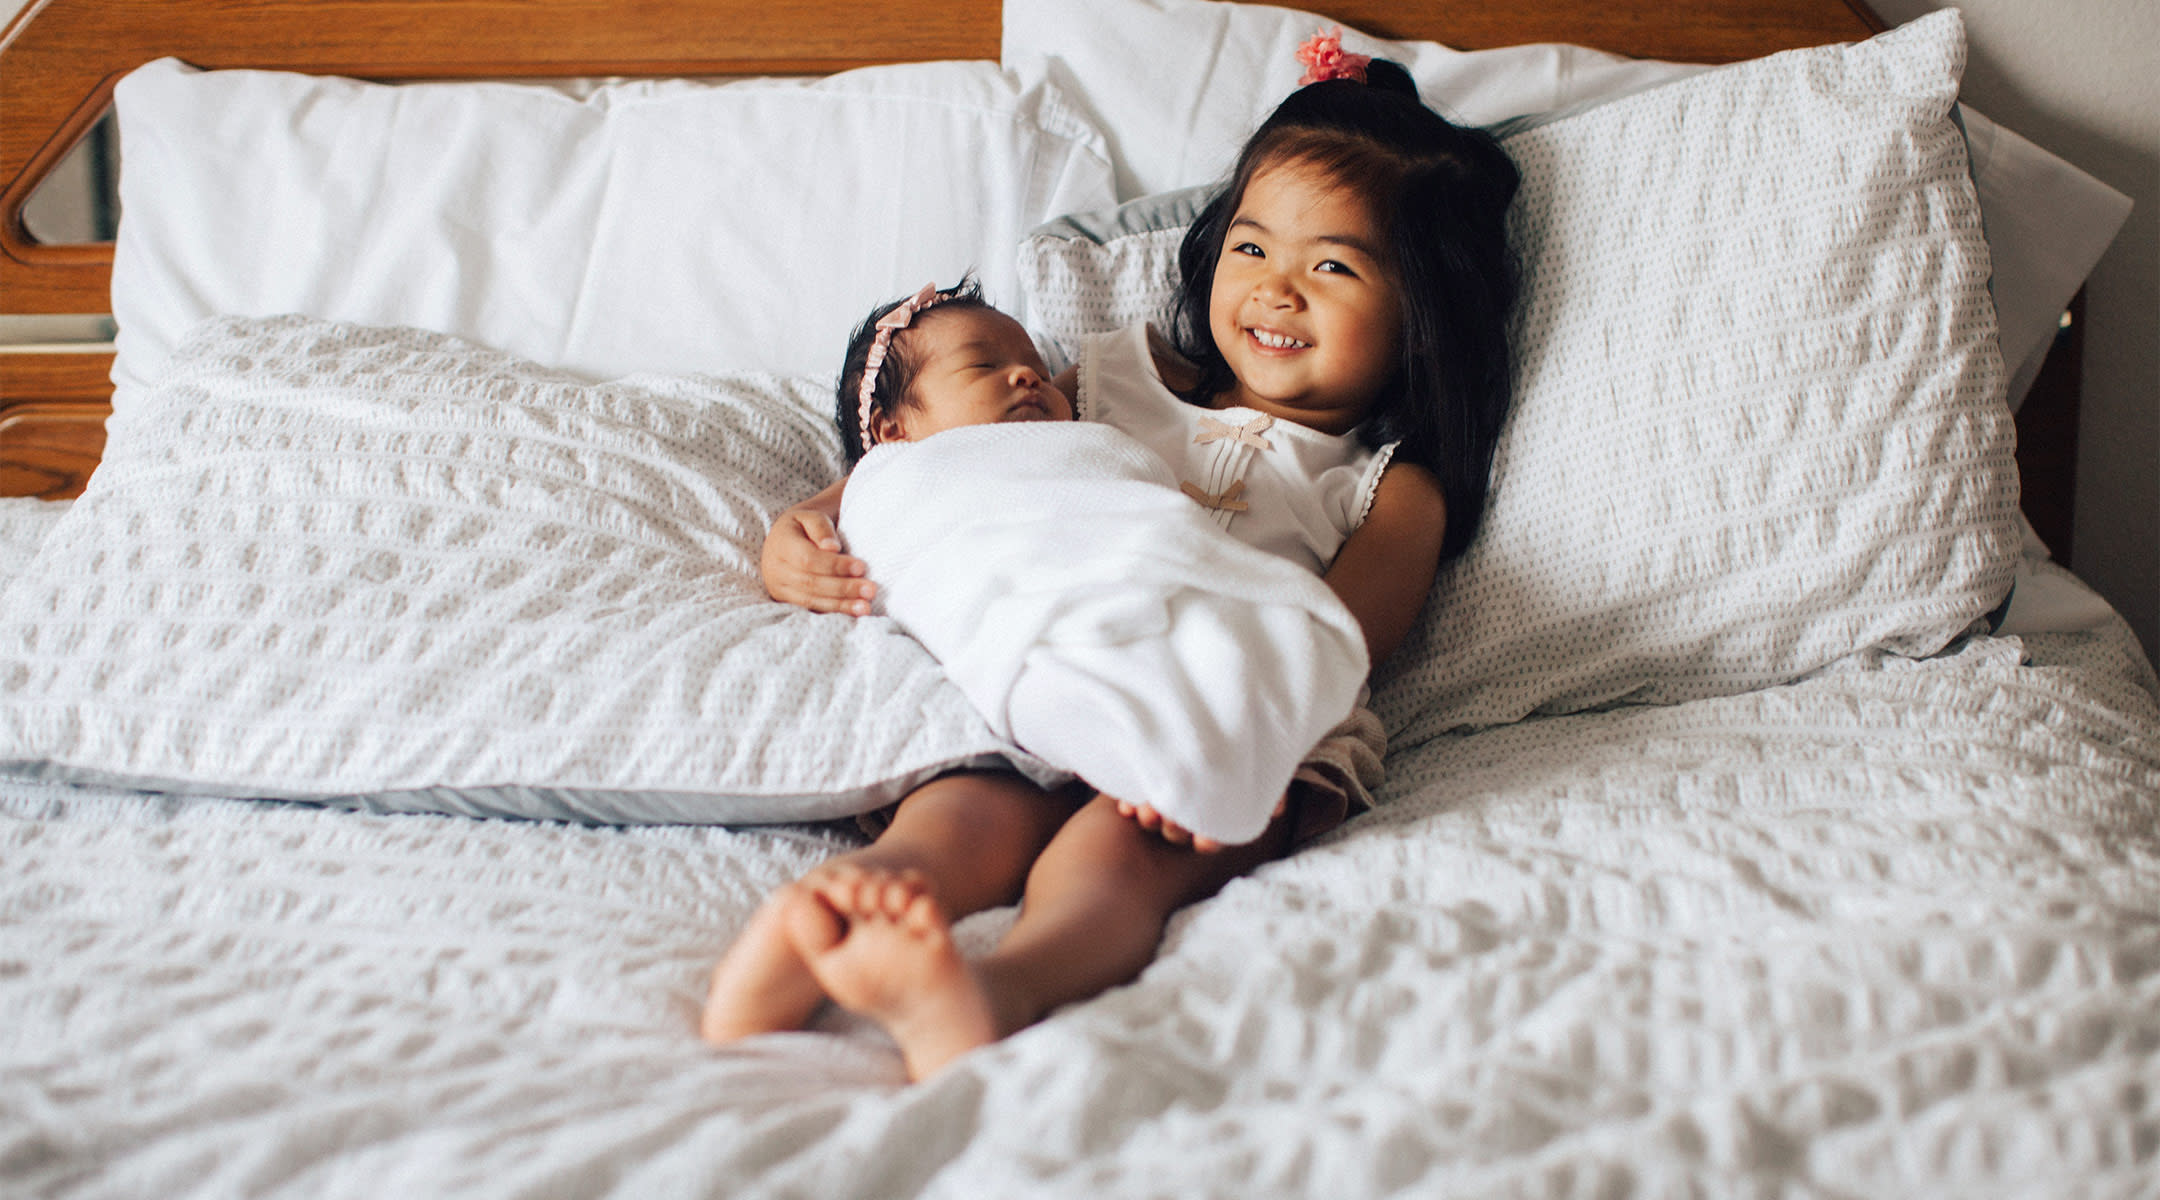 older sibling happily holding her newborn sister